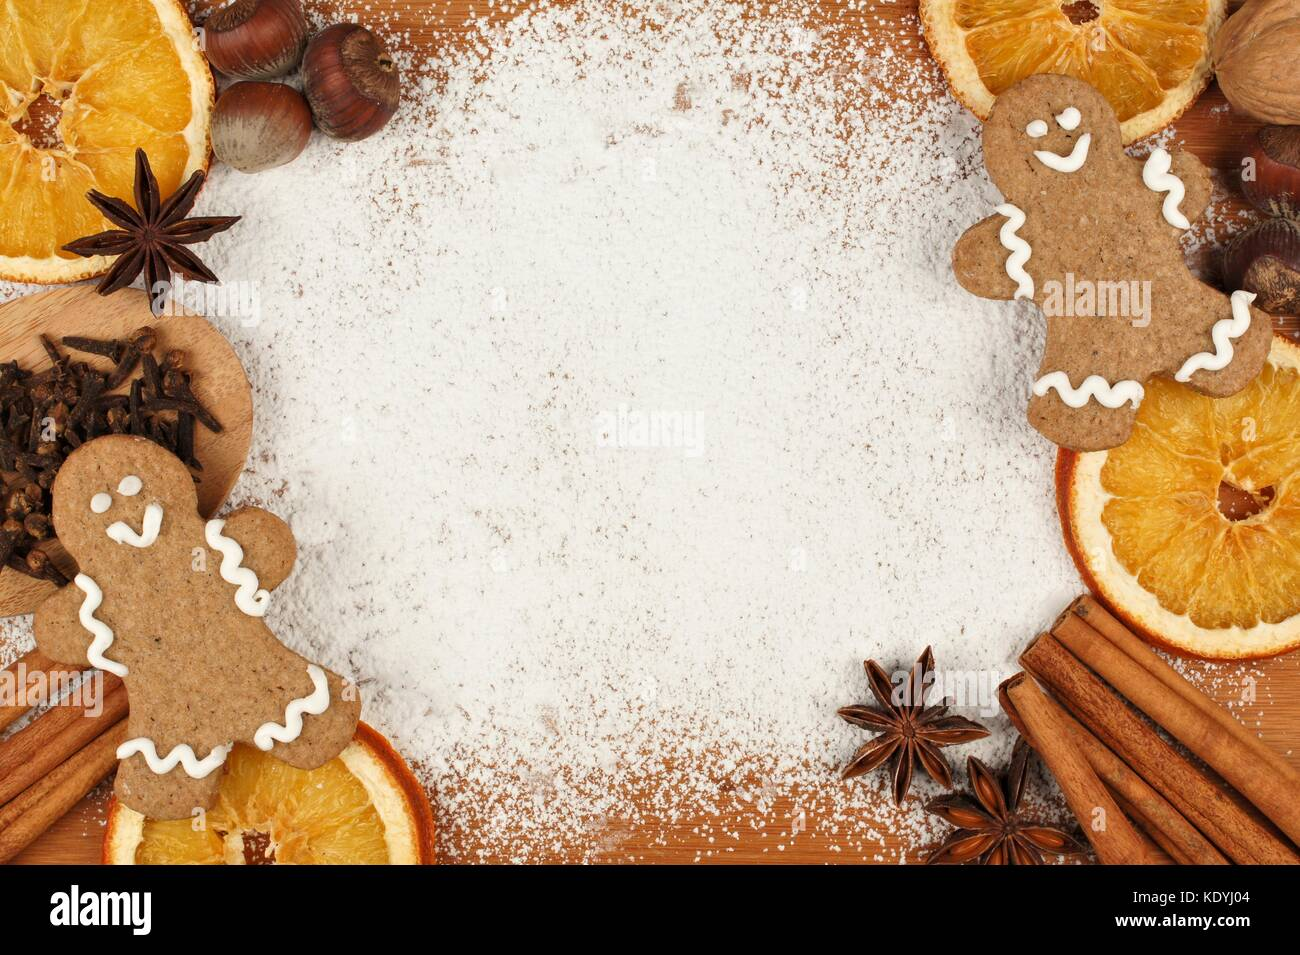 Holiday baking themed frame with gingerbread men, nuts and spices against a powdered sugar background - Stock Image